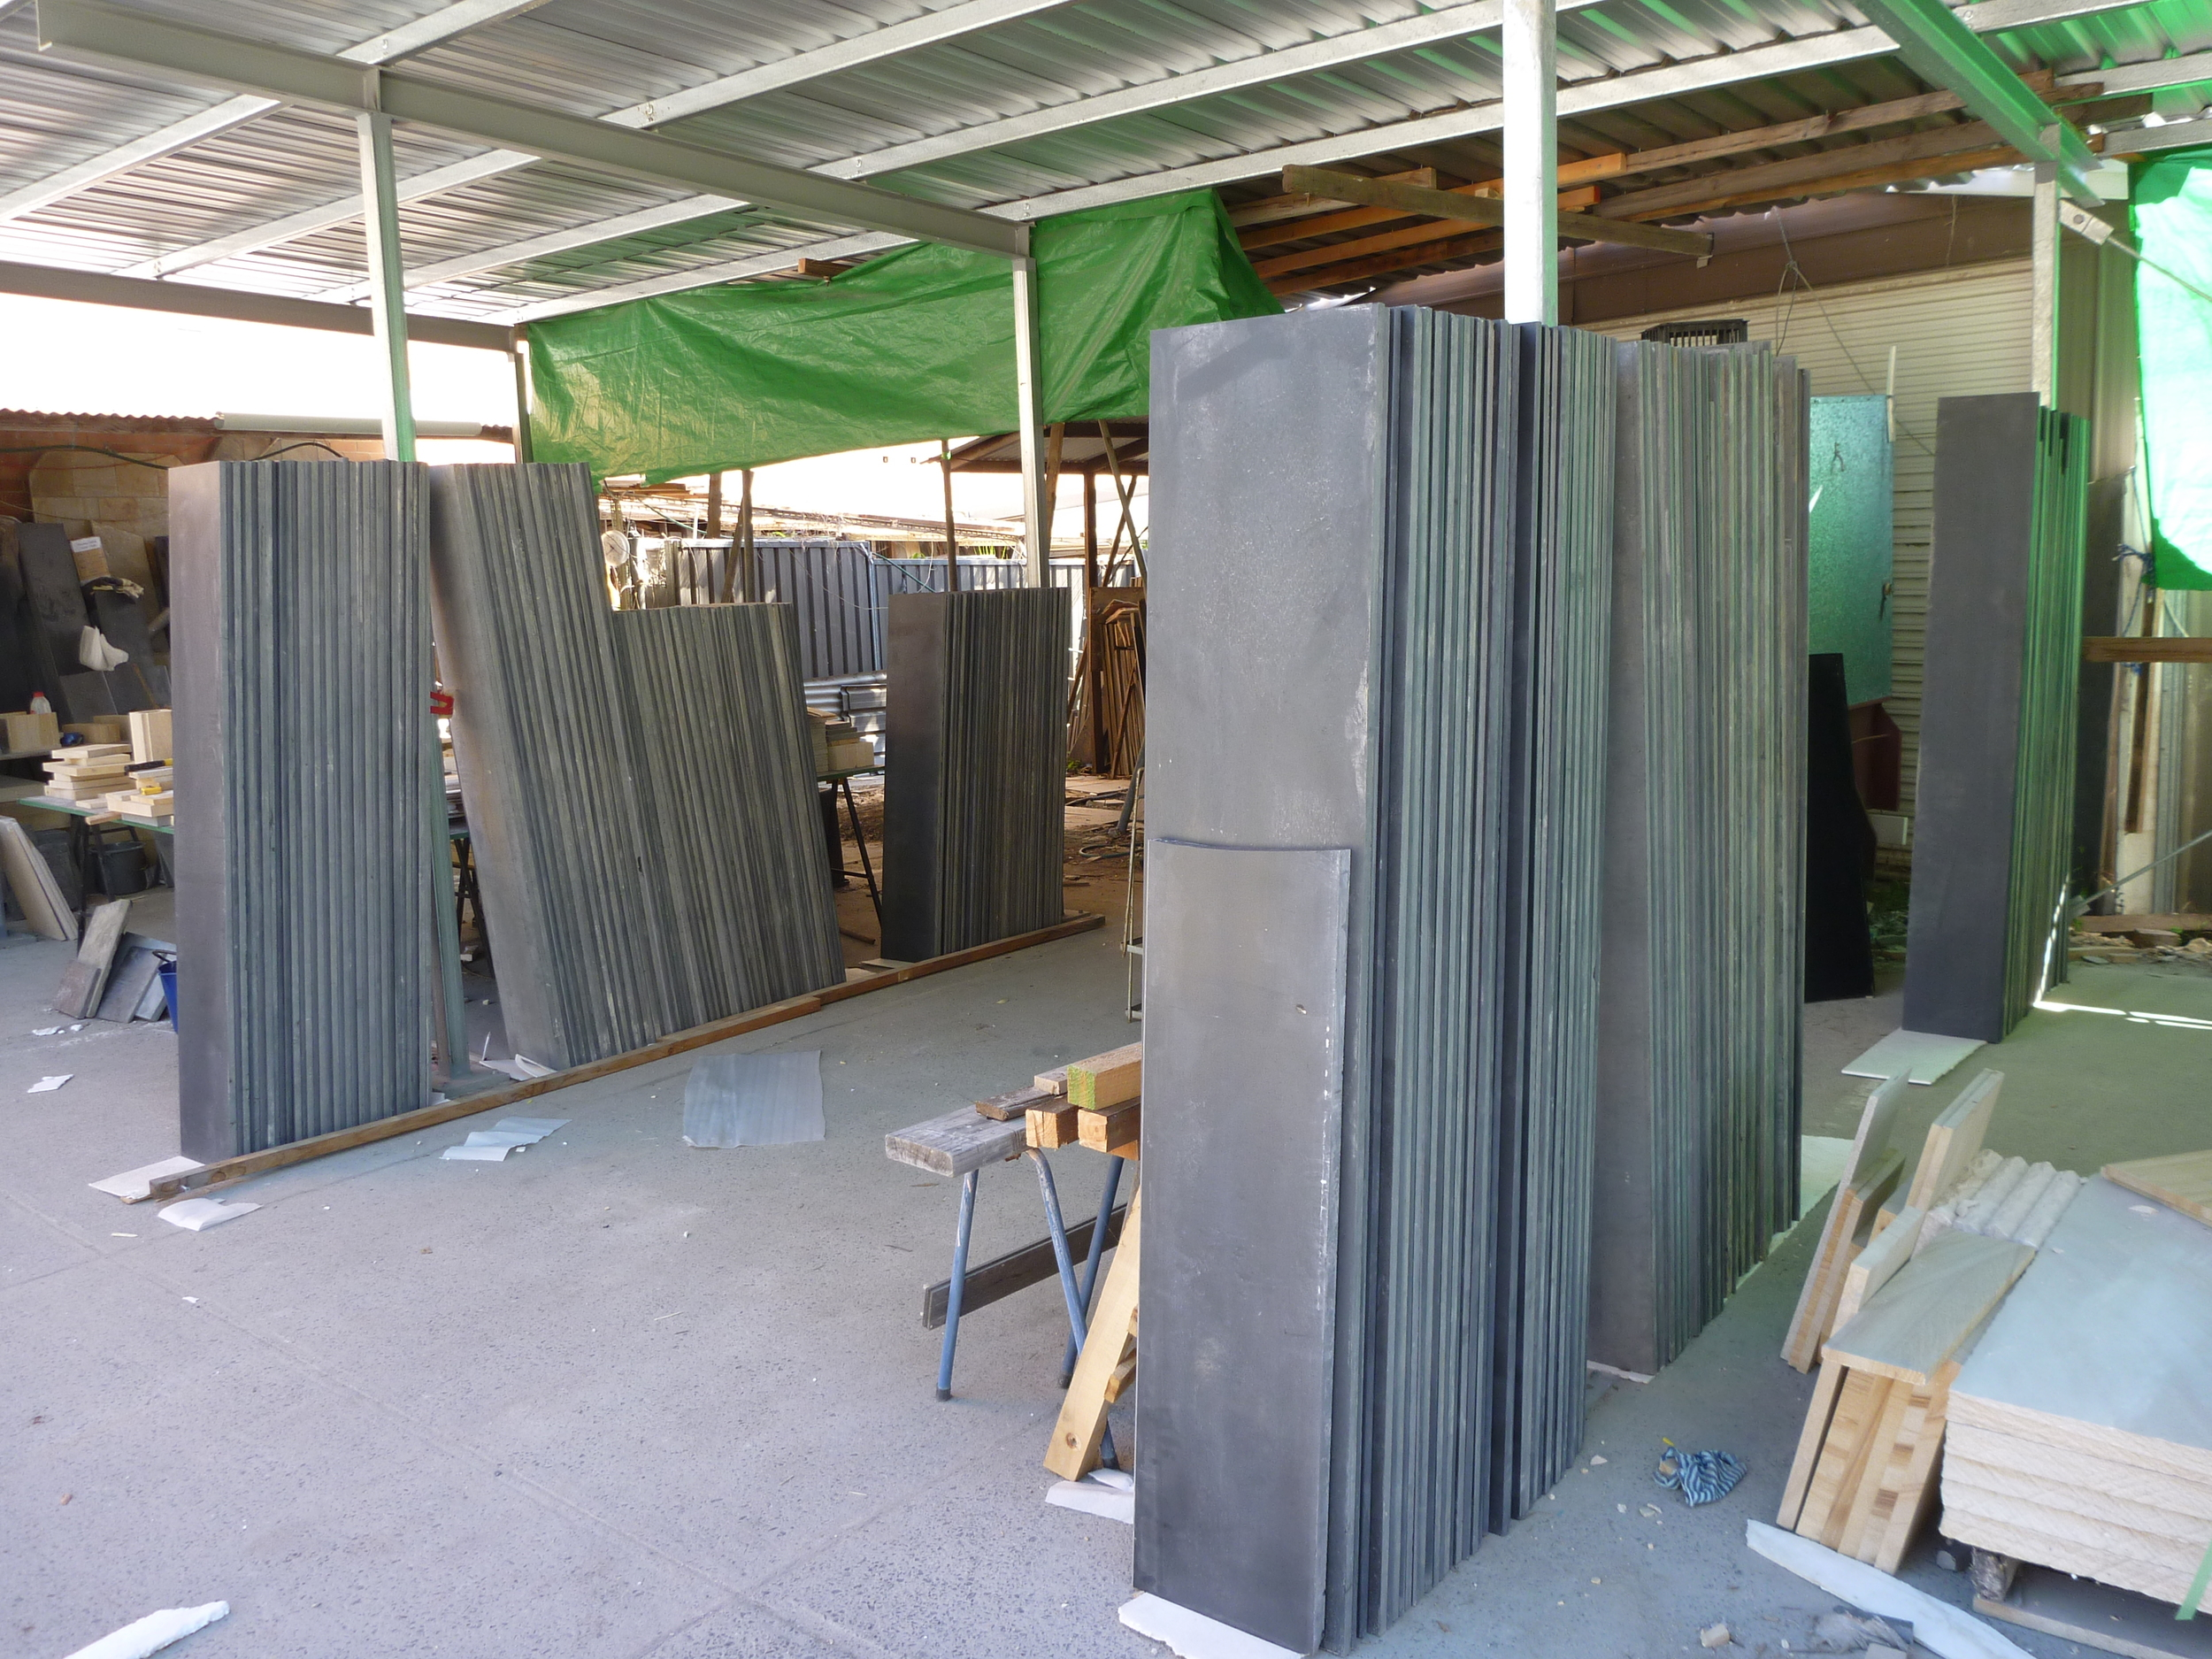 10. Slate slabs to be cut and bullnosed for steps